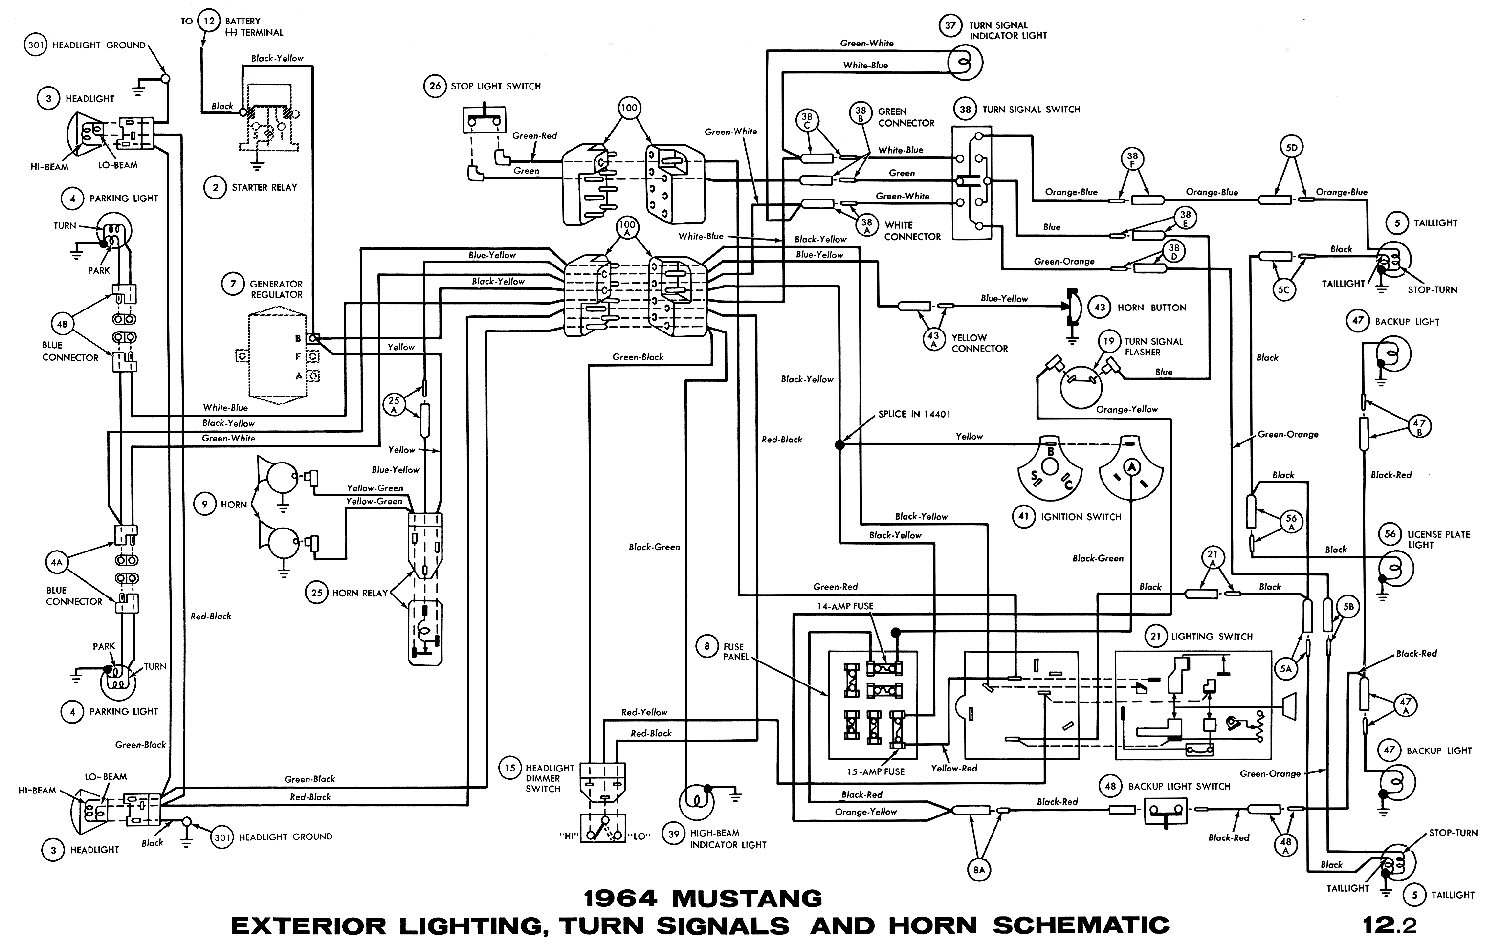 66 mustang horn diagram 23 wiring diagram images wiring diagrams  crackthecode co 1966 Mustang Under Dash Wiring Diagram 1966 Mustang Under Dash  Wiring ...